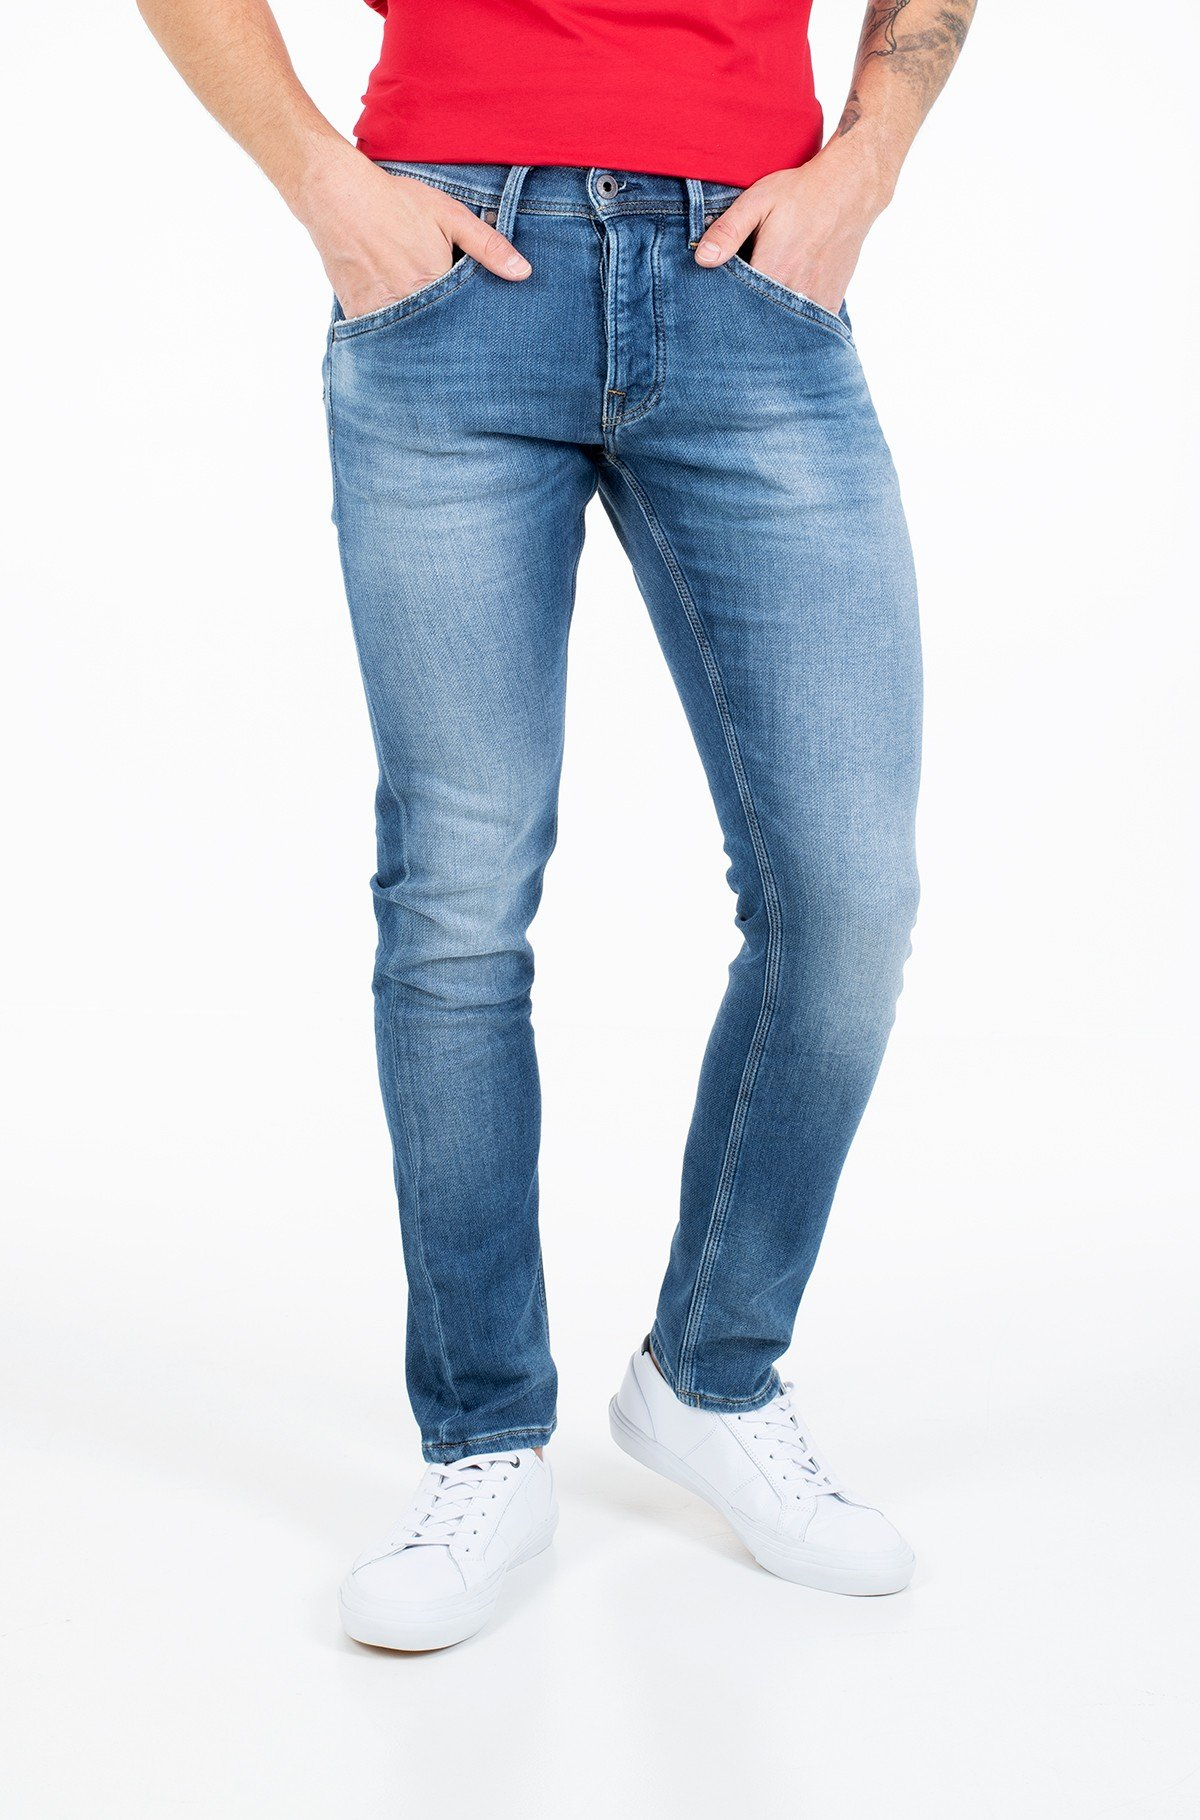 Jeans TRACK/PM201100HB1-full-1